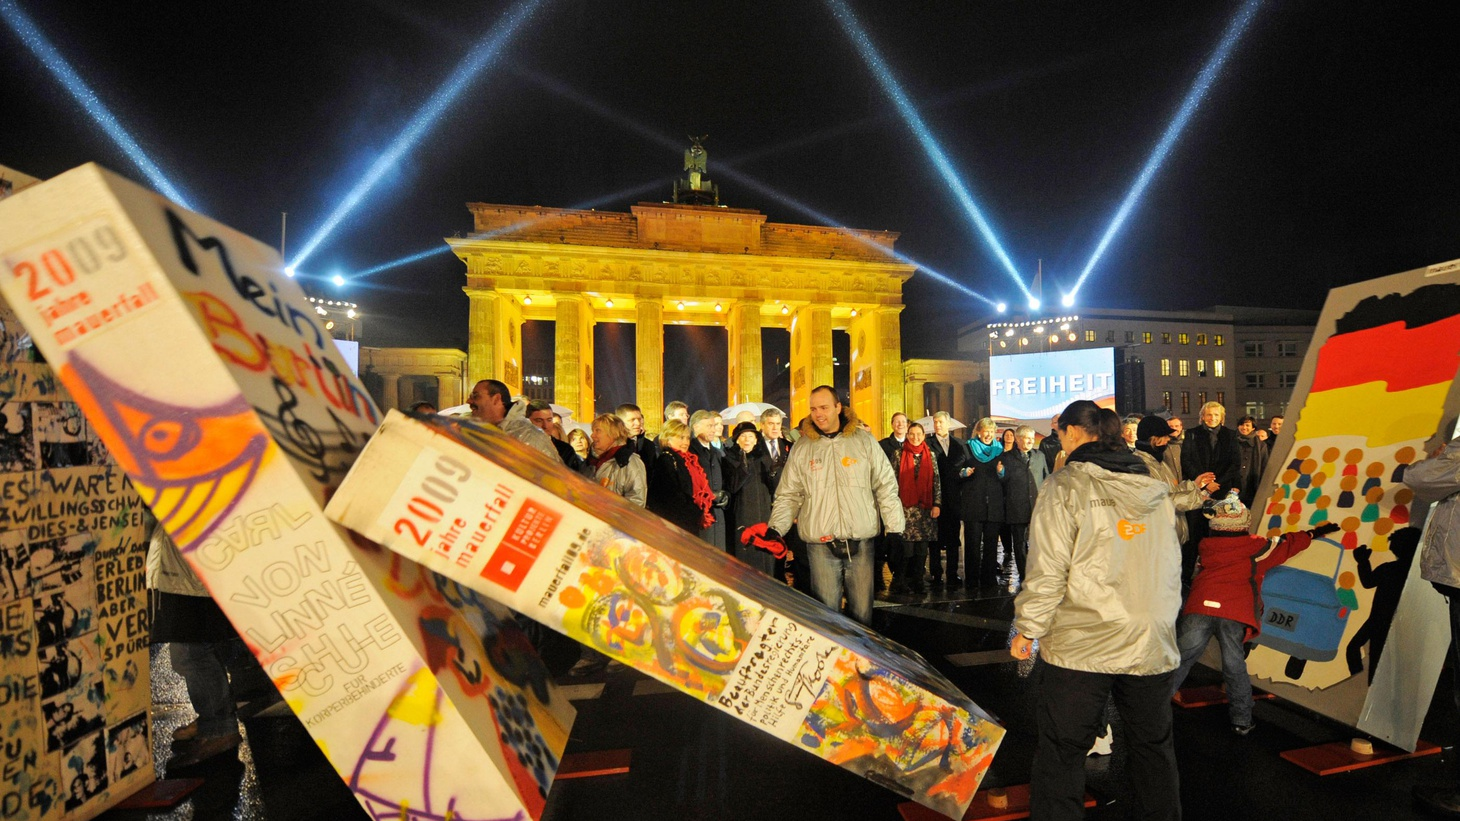 There are huge celebrations in Berlin, as world leaders gather to mark an event that changed the face of the world. It was twenty years ago today that the Berlin Wall came down. In this rebroadcast of today's To the Point, guest host Sara Terry asks whether the past two decades have lived up to the promise of that moment, and how the end of the Cold War era shaped the political and economic realities of today. Also, the Supreme Court considers life sentences for children, and why pro-choice activists are upset with the vote on healthcare reform.